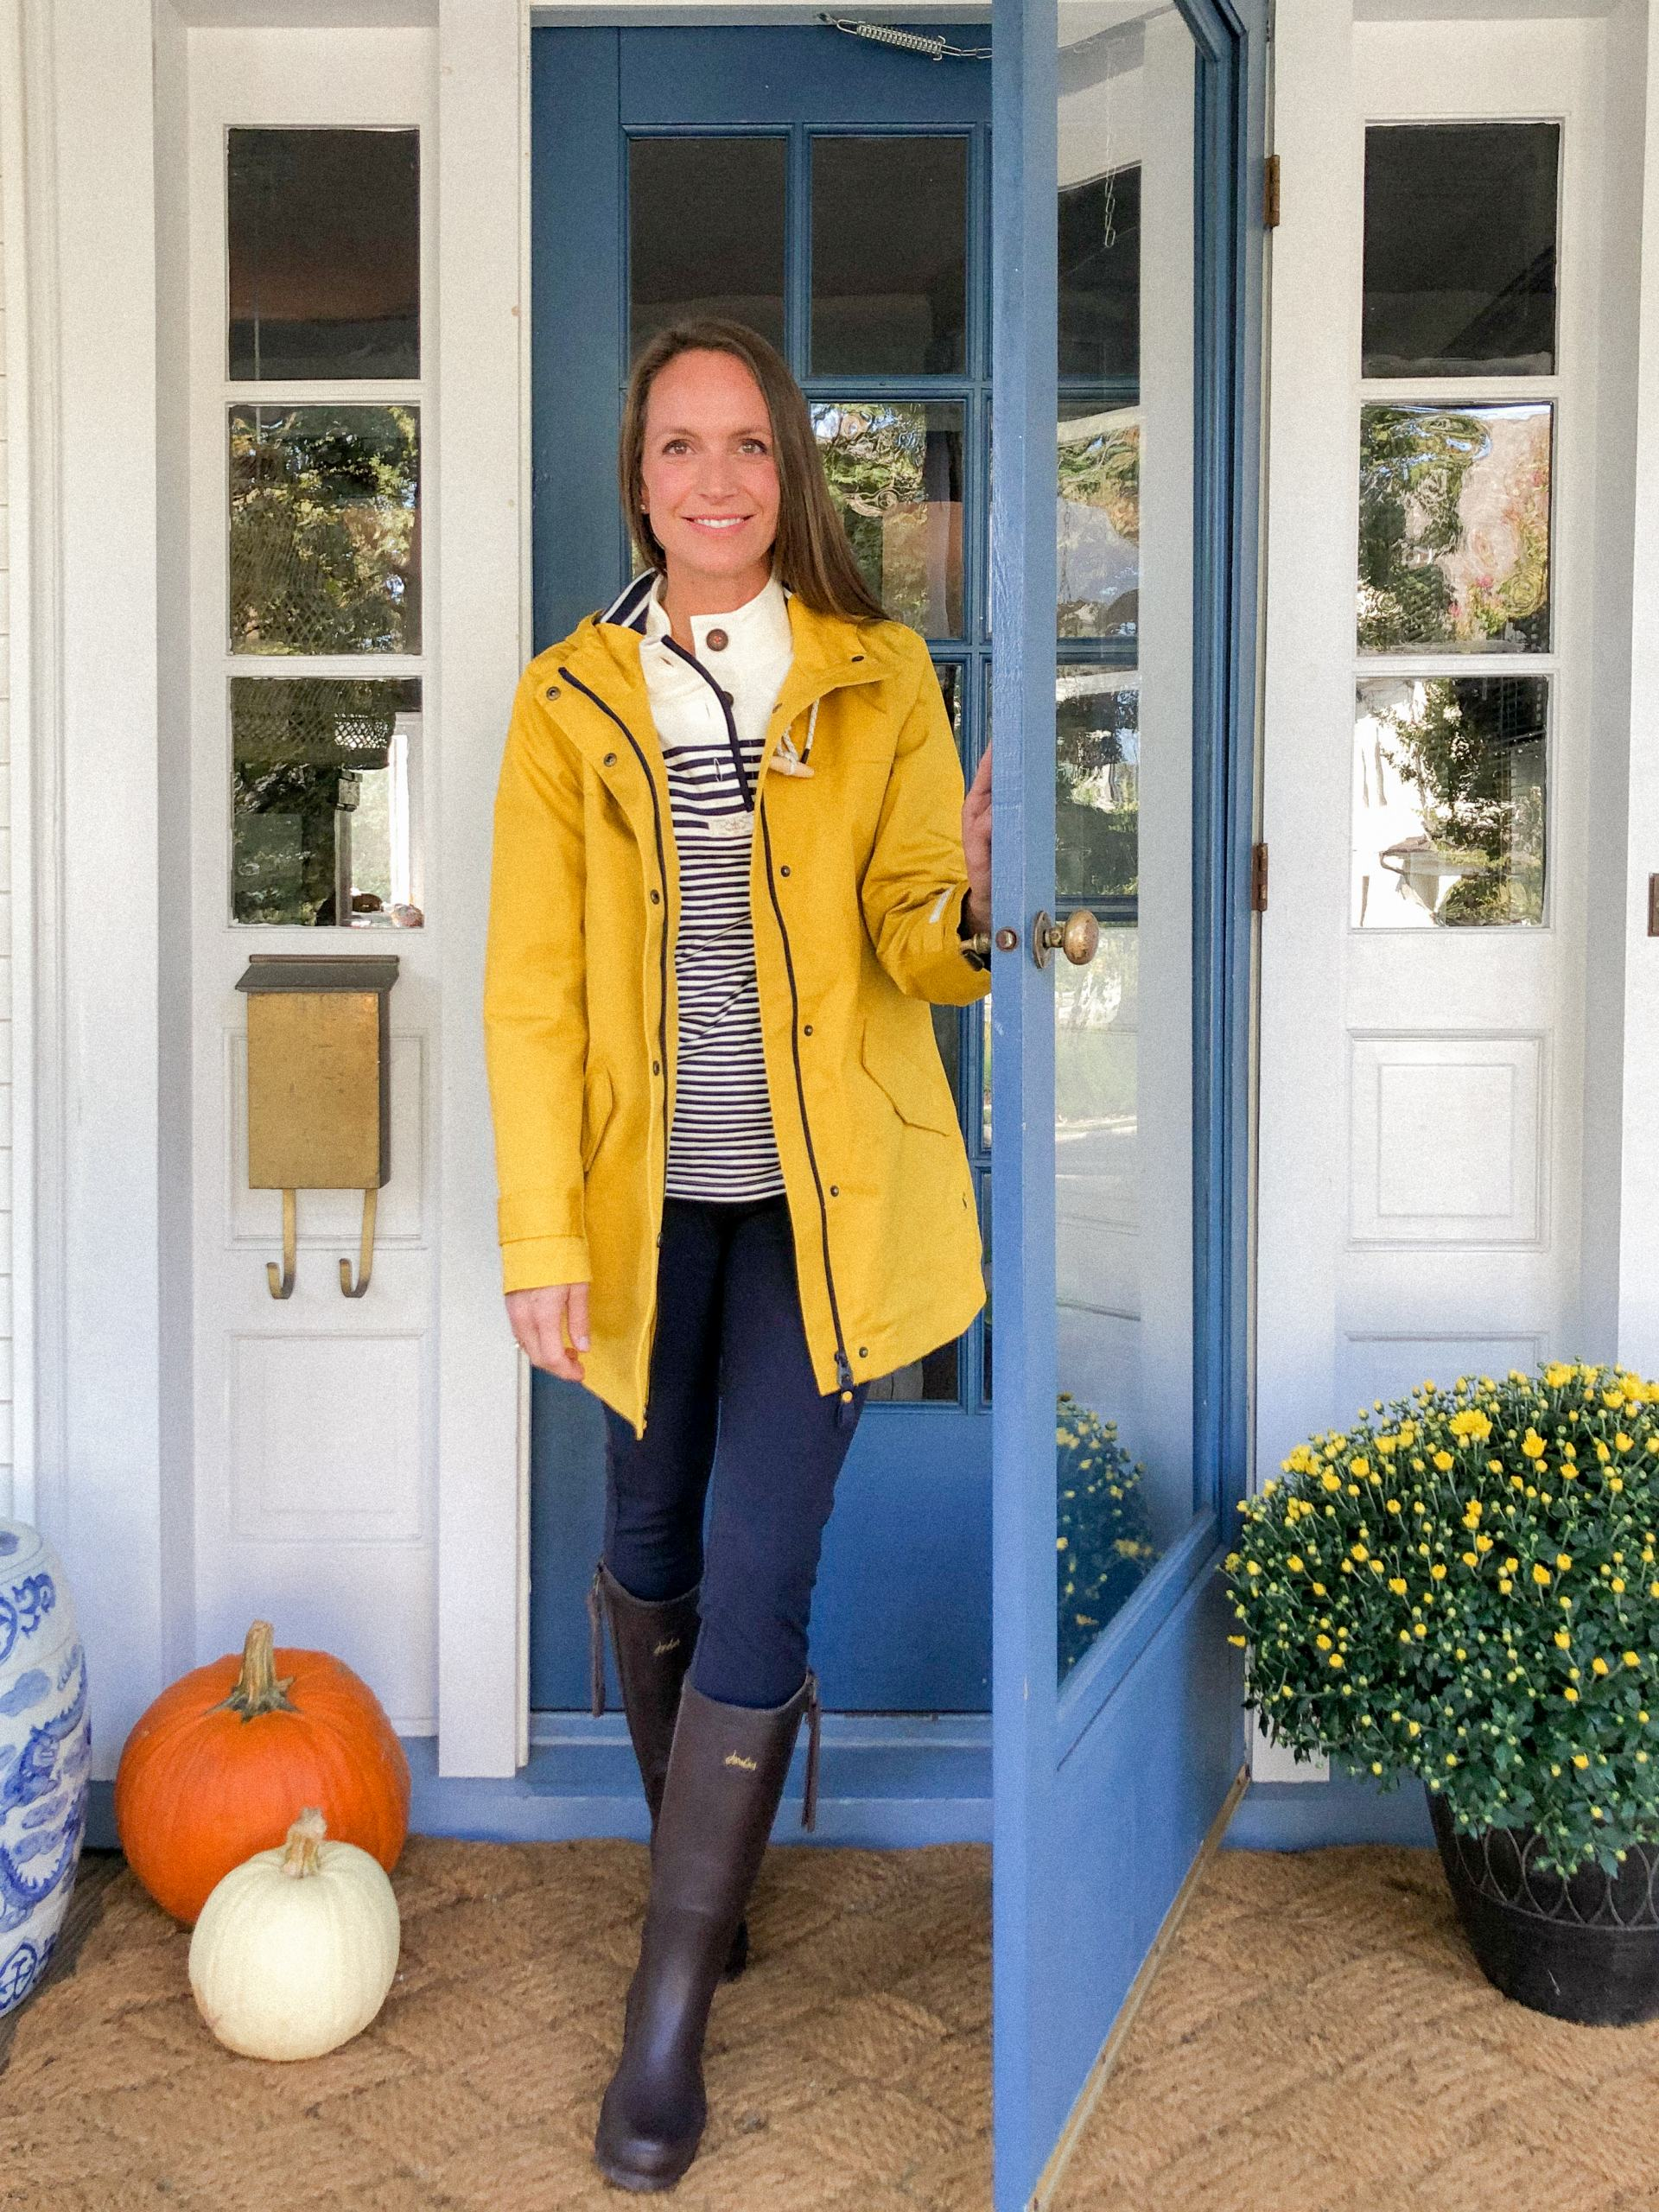 collette rain boots with striped sweatshirt and yellow jacket